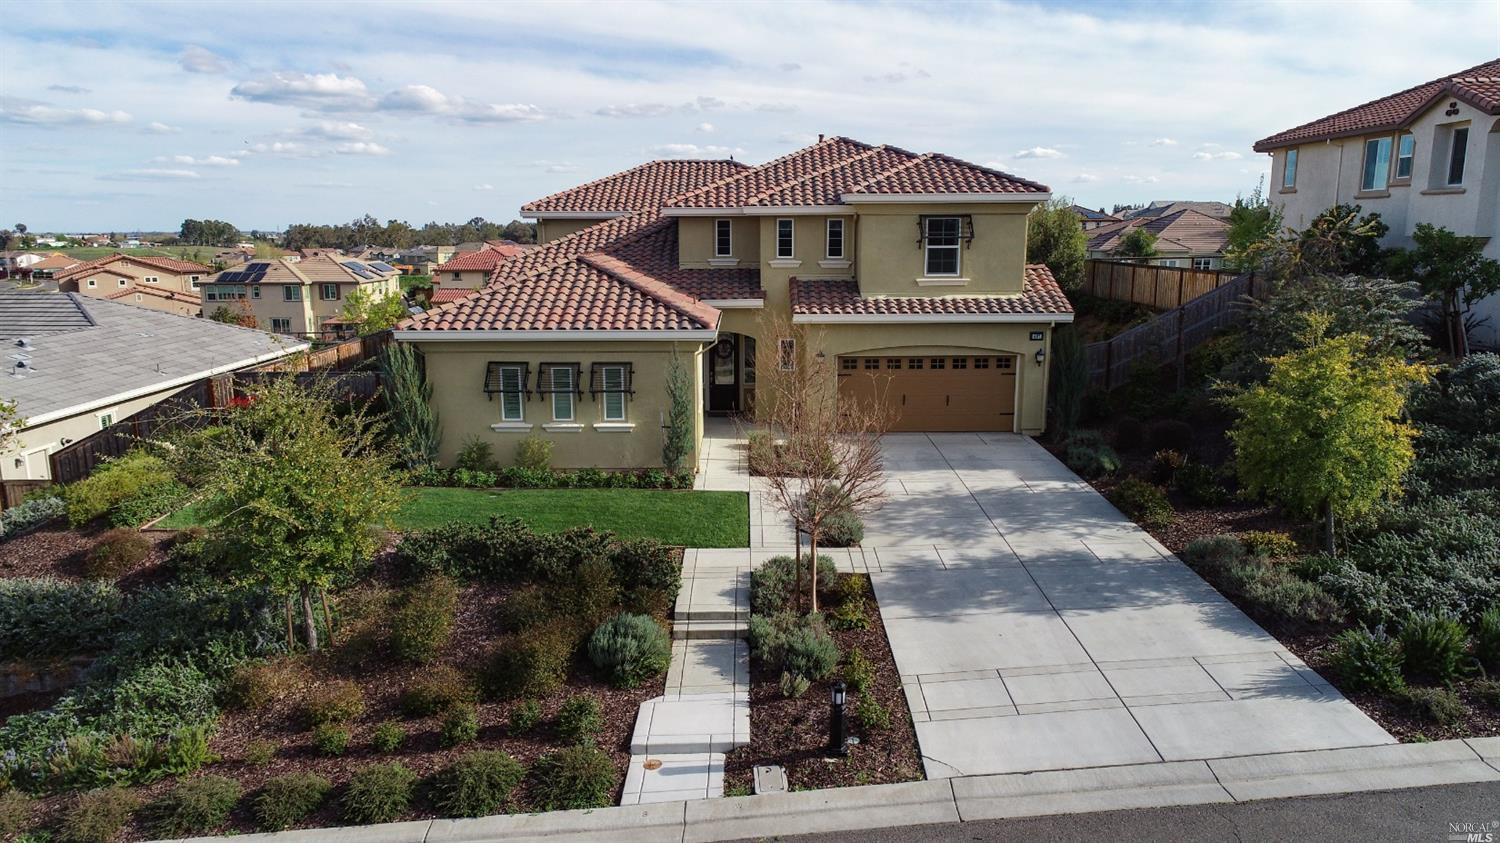 407 Peacock Way, Vacaville, CA 95688